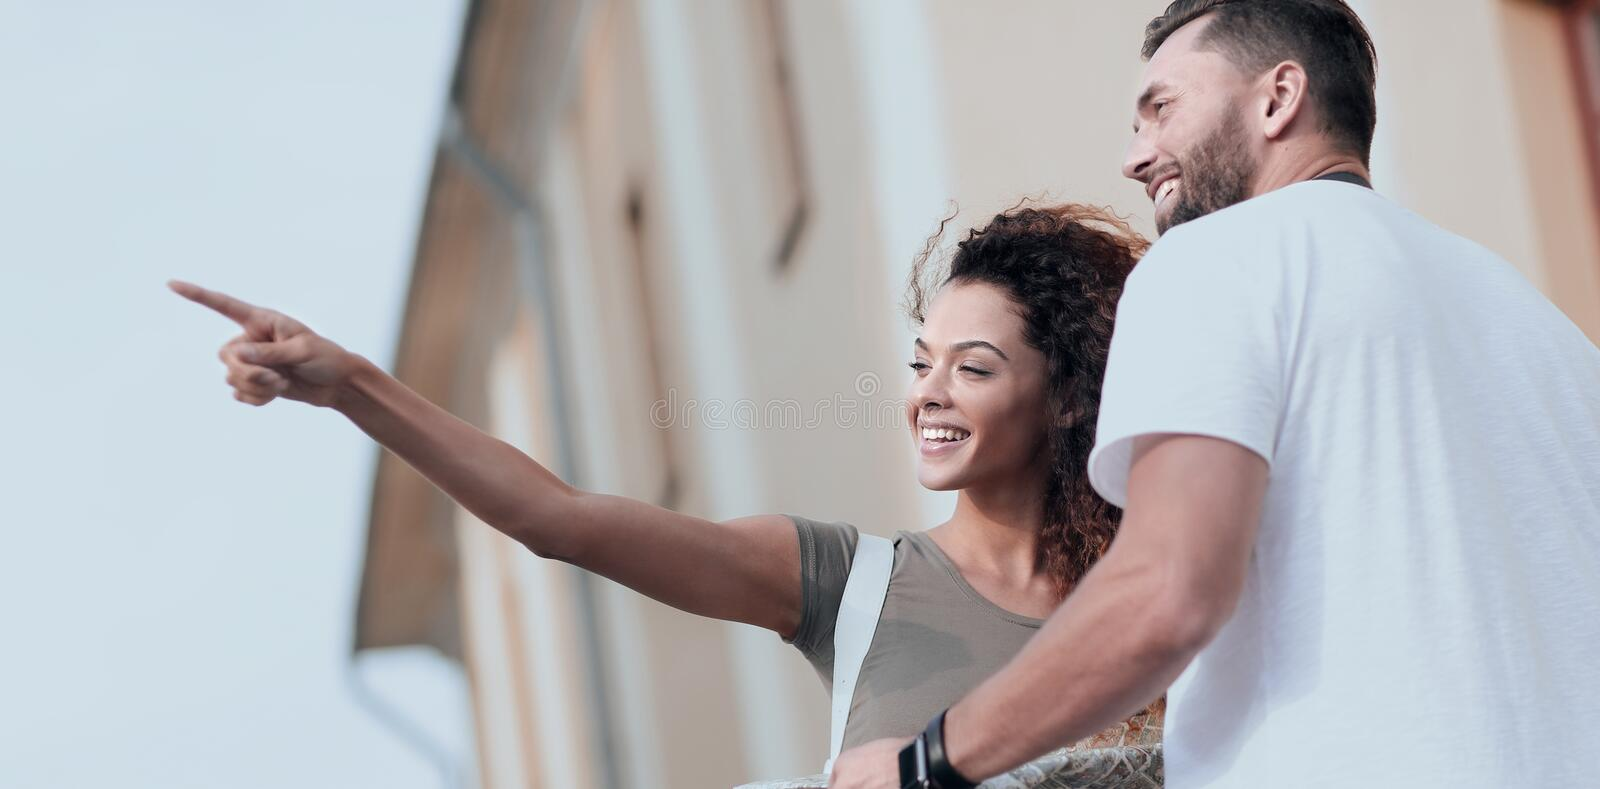 Happy man showing something to woman outside building royalty free stock photo